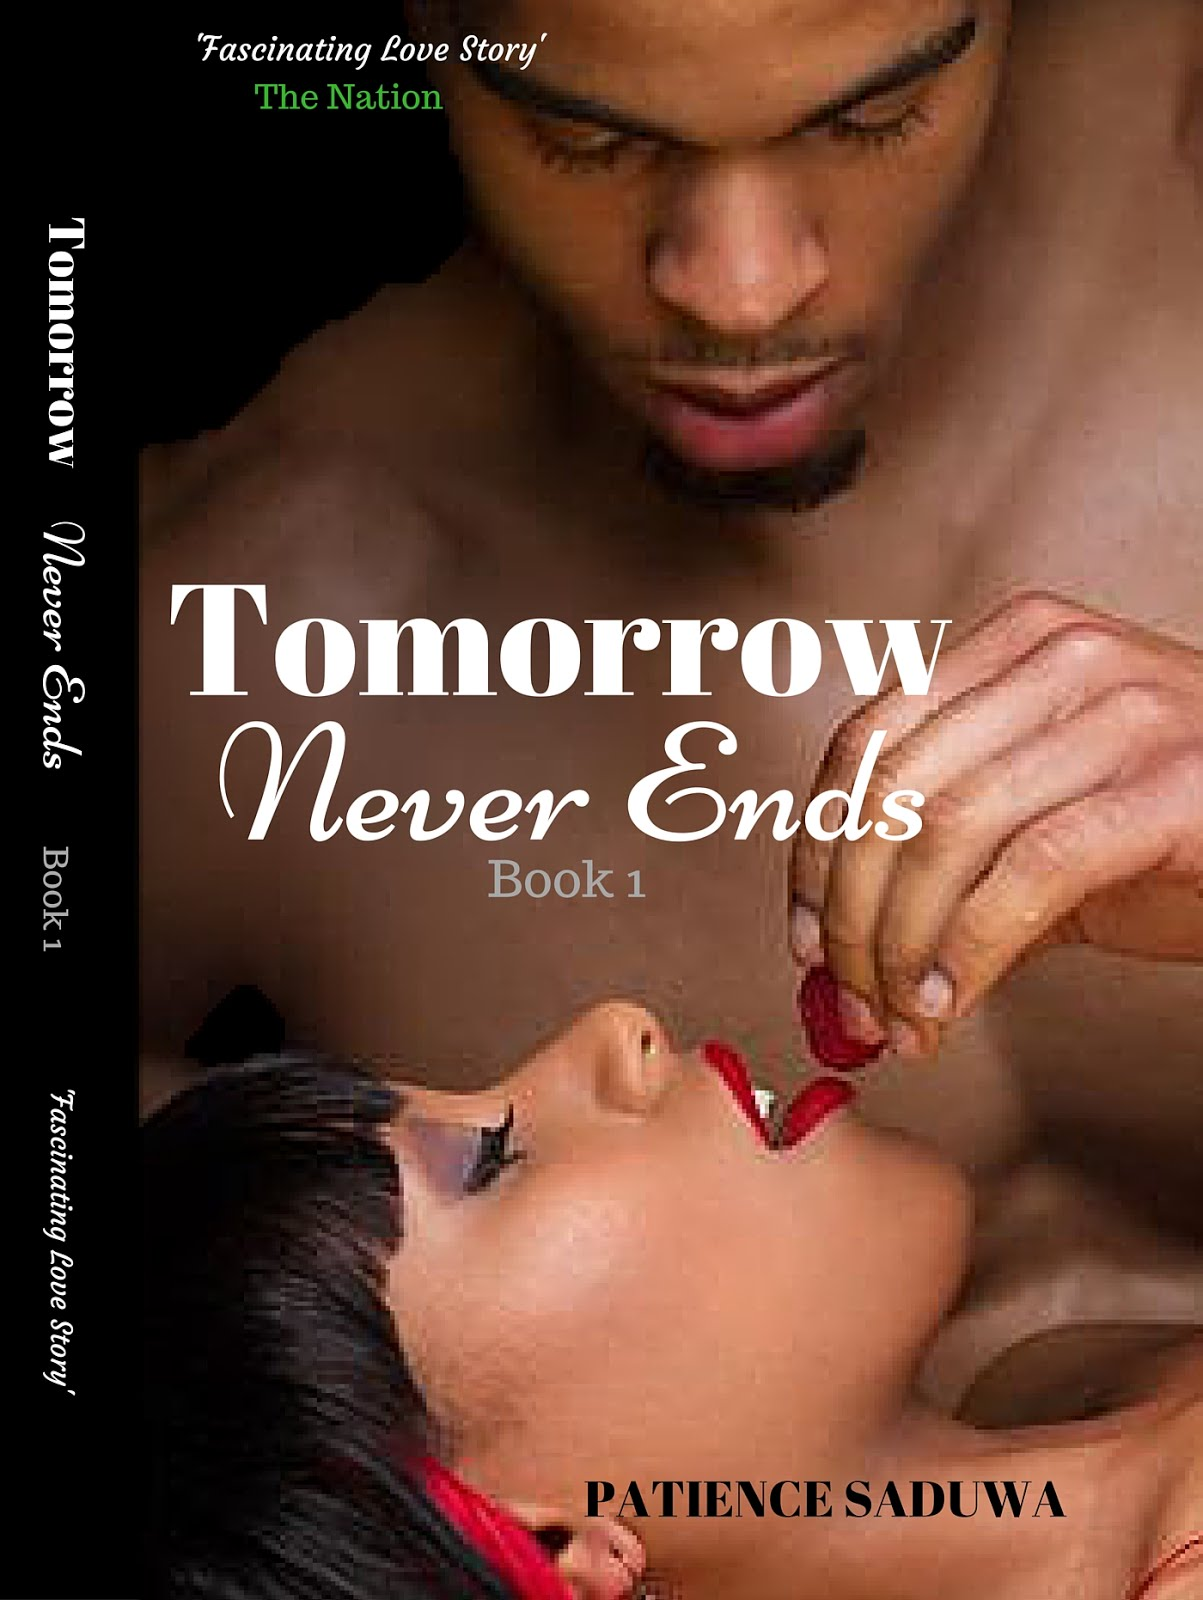 Tomorrow Never Ends by Patricia Saduwa